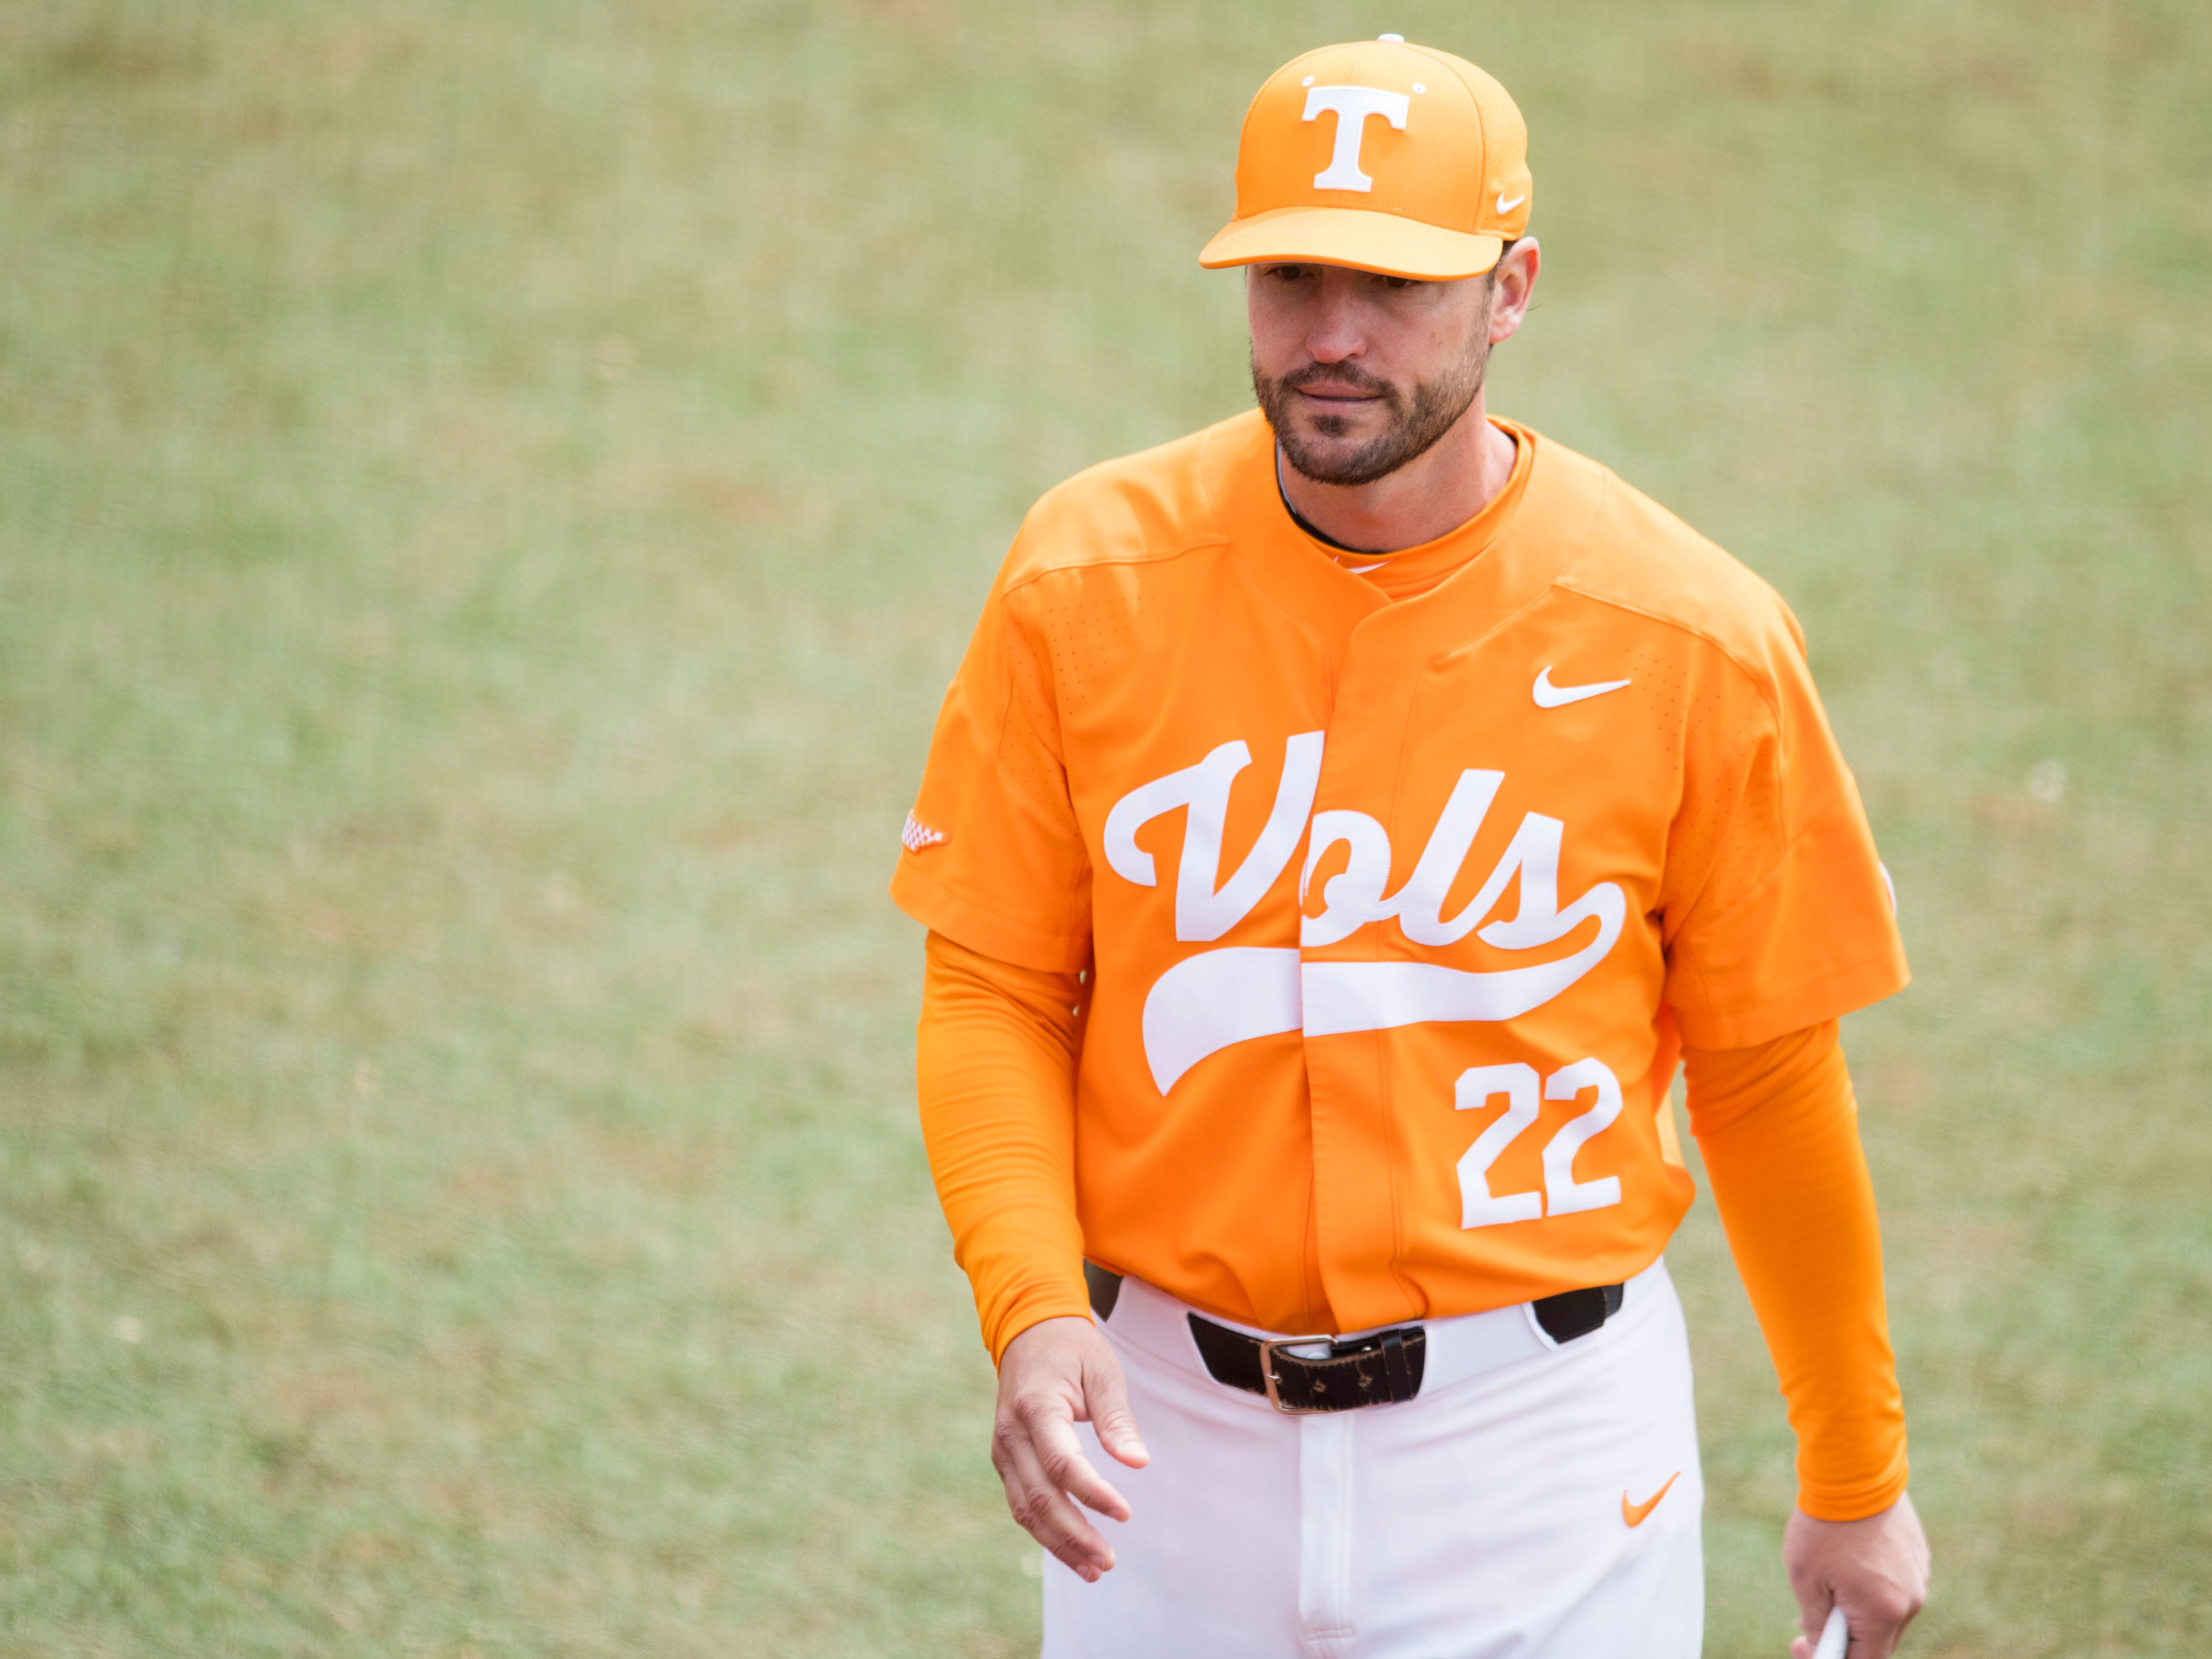 Tennessee baseball coach Tony Vitello before the start of the game against Florida at Lindsey Nelson Stadium on Sunday, April 8, 2018.